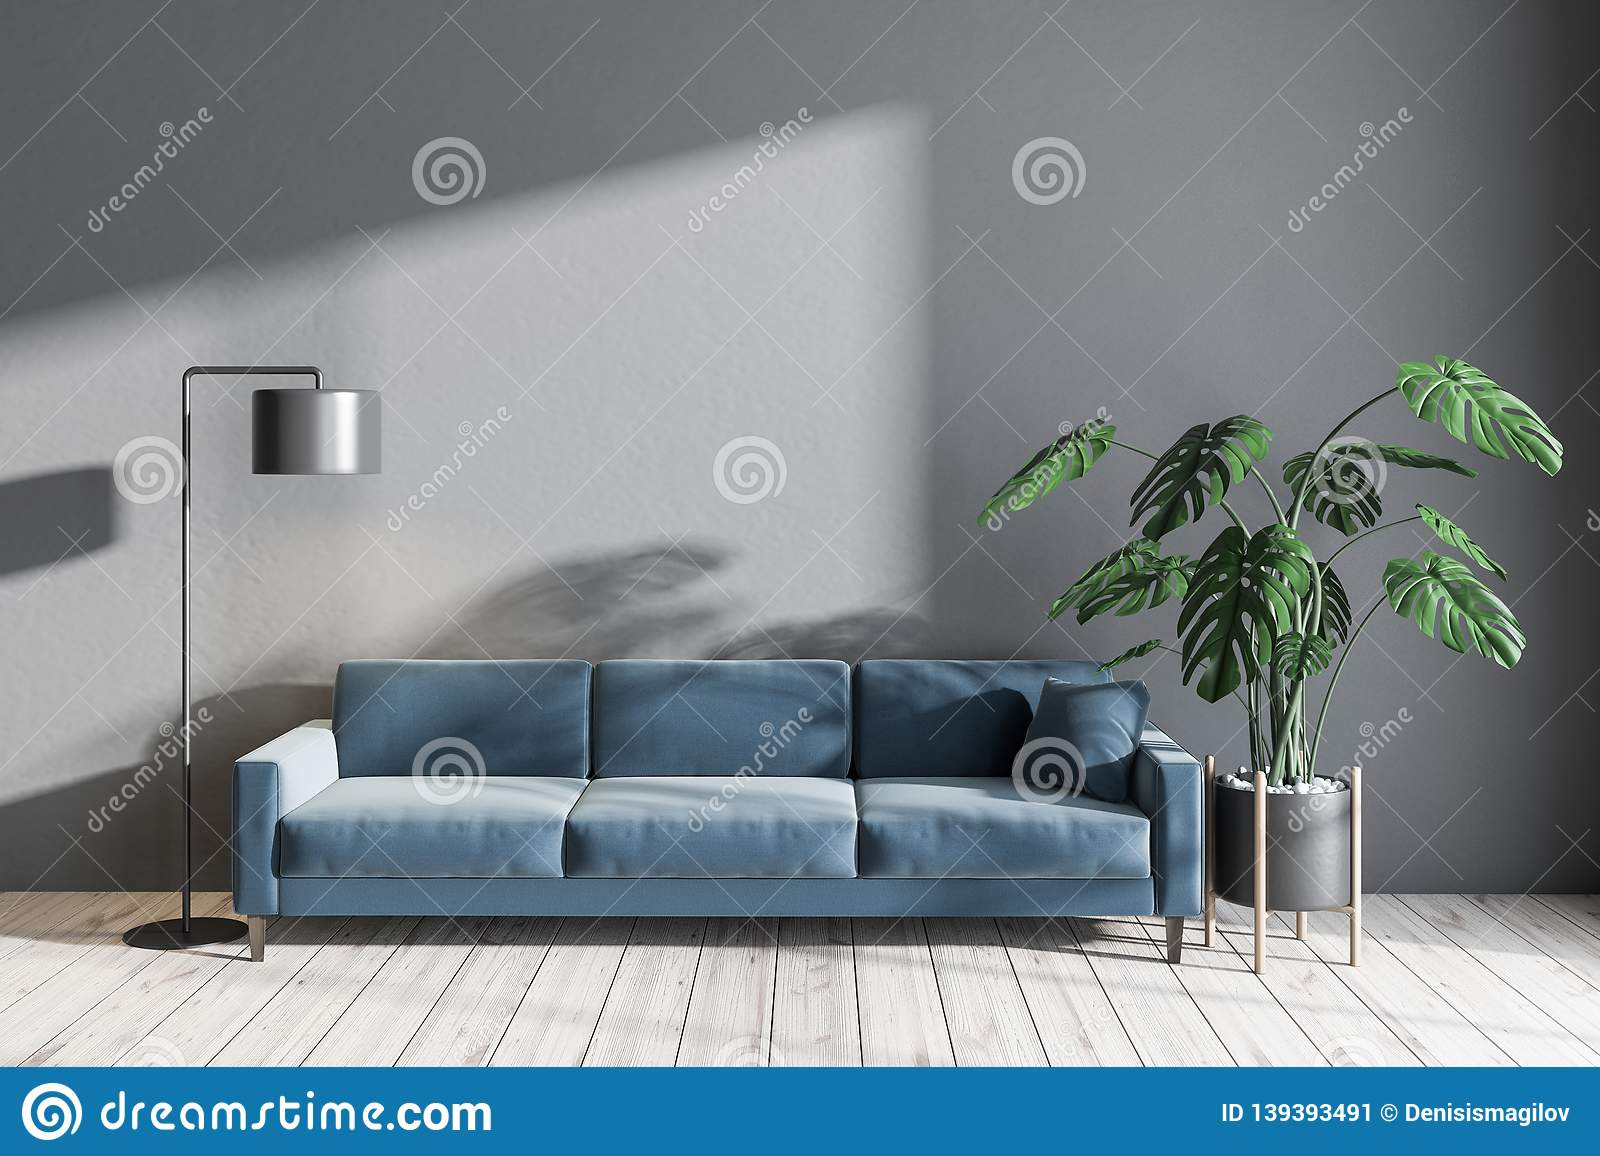 Gray Living Room With Blue Sofa Stock Illustration Illustration Of Front Luxurious 139393491